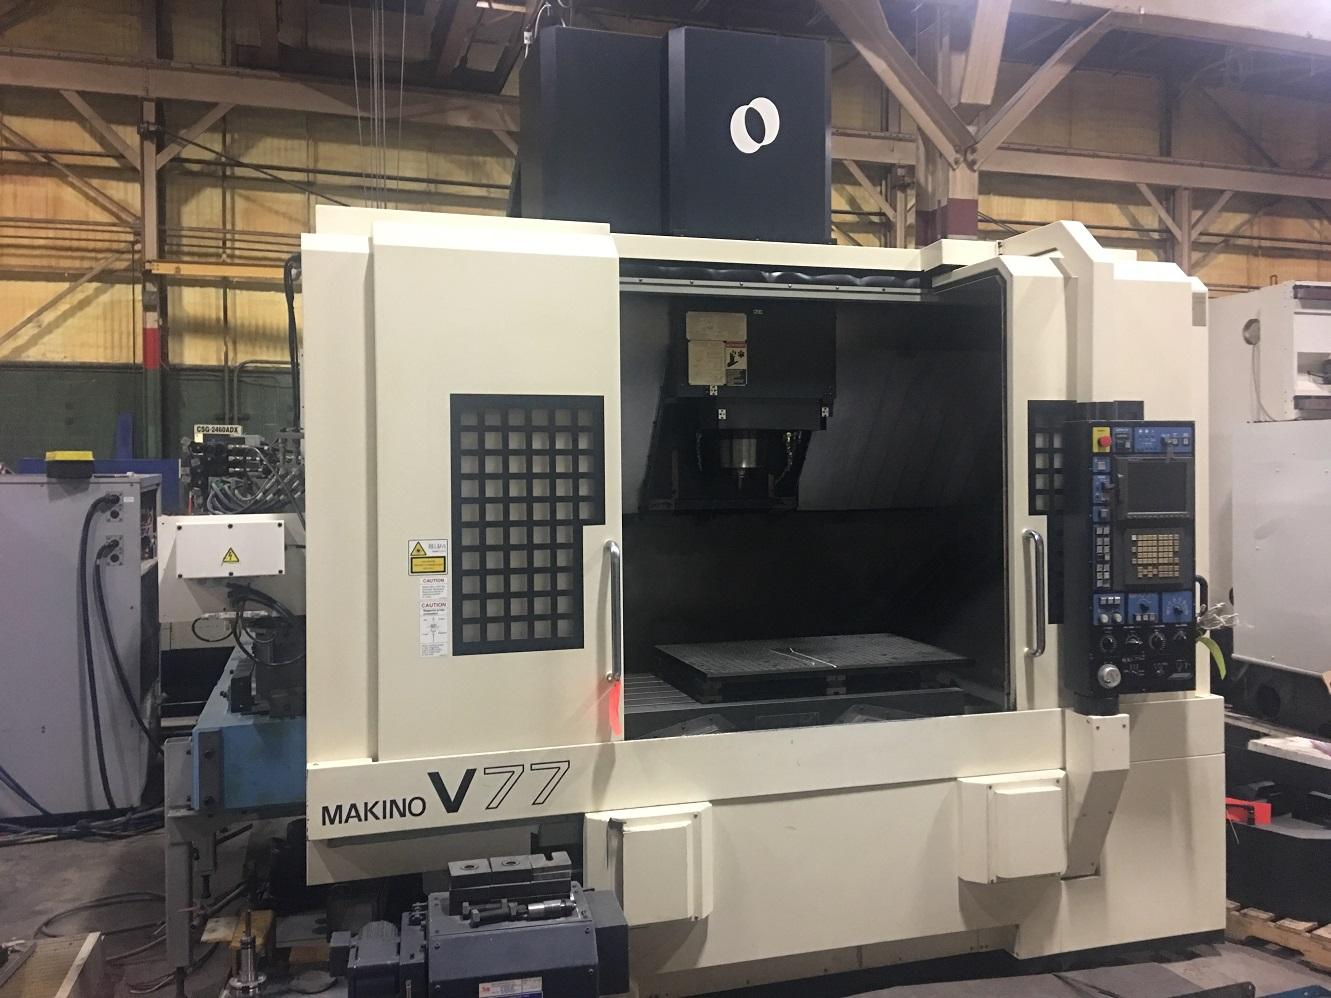 MAKINO V-77 CNC VERTICAL MACHINING CENTER WITH 12